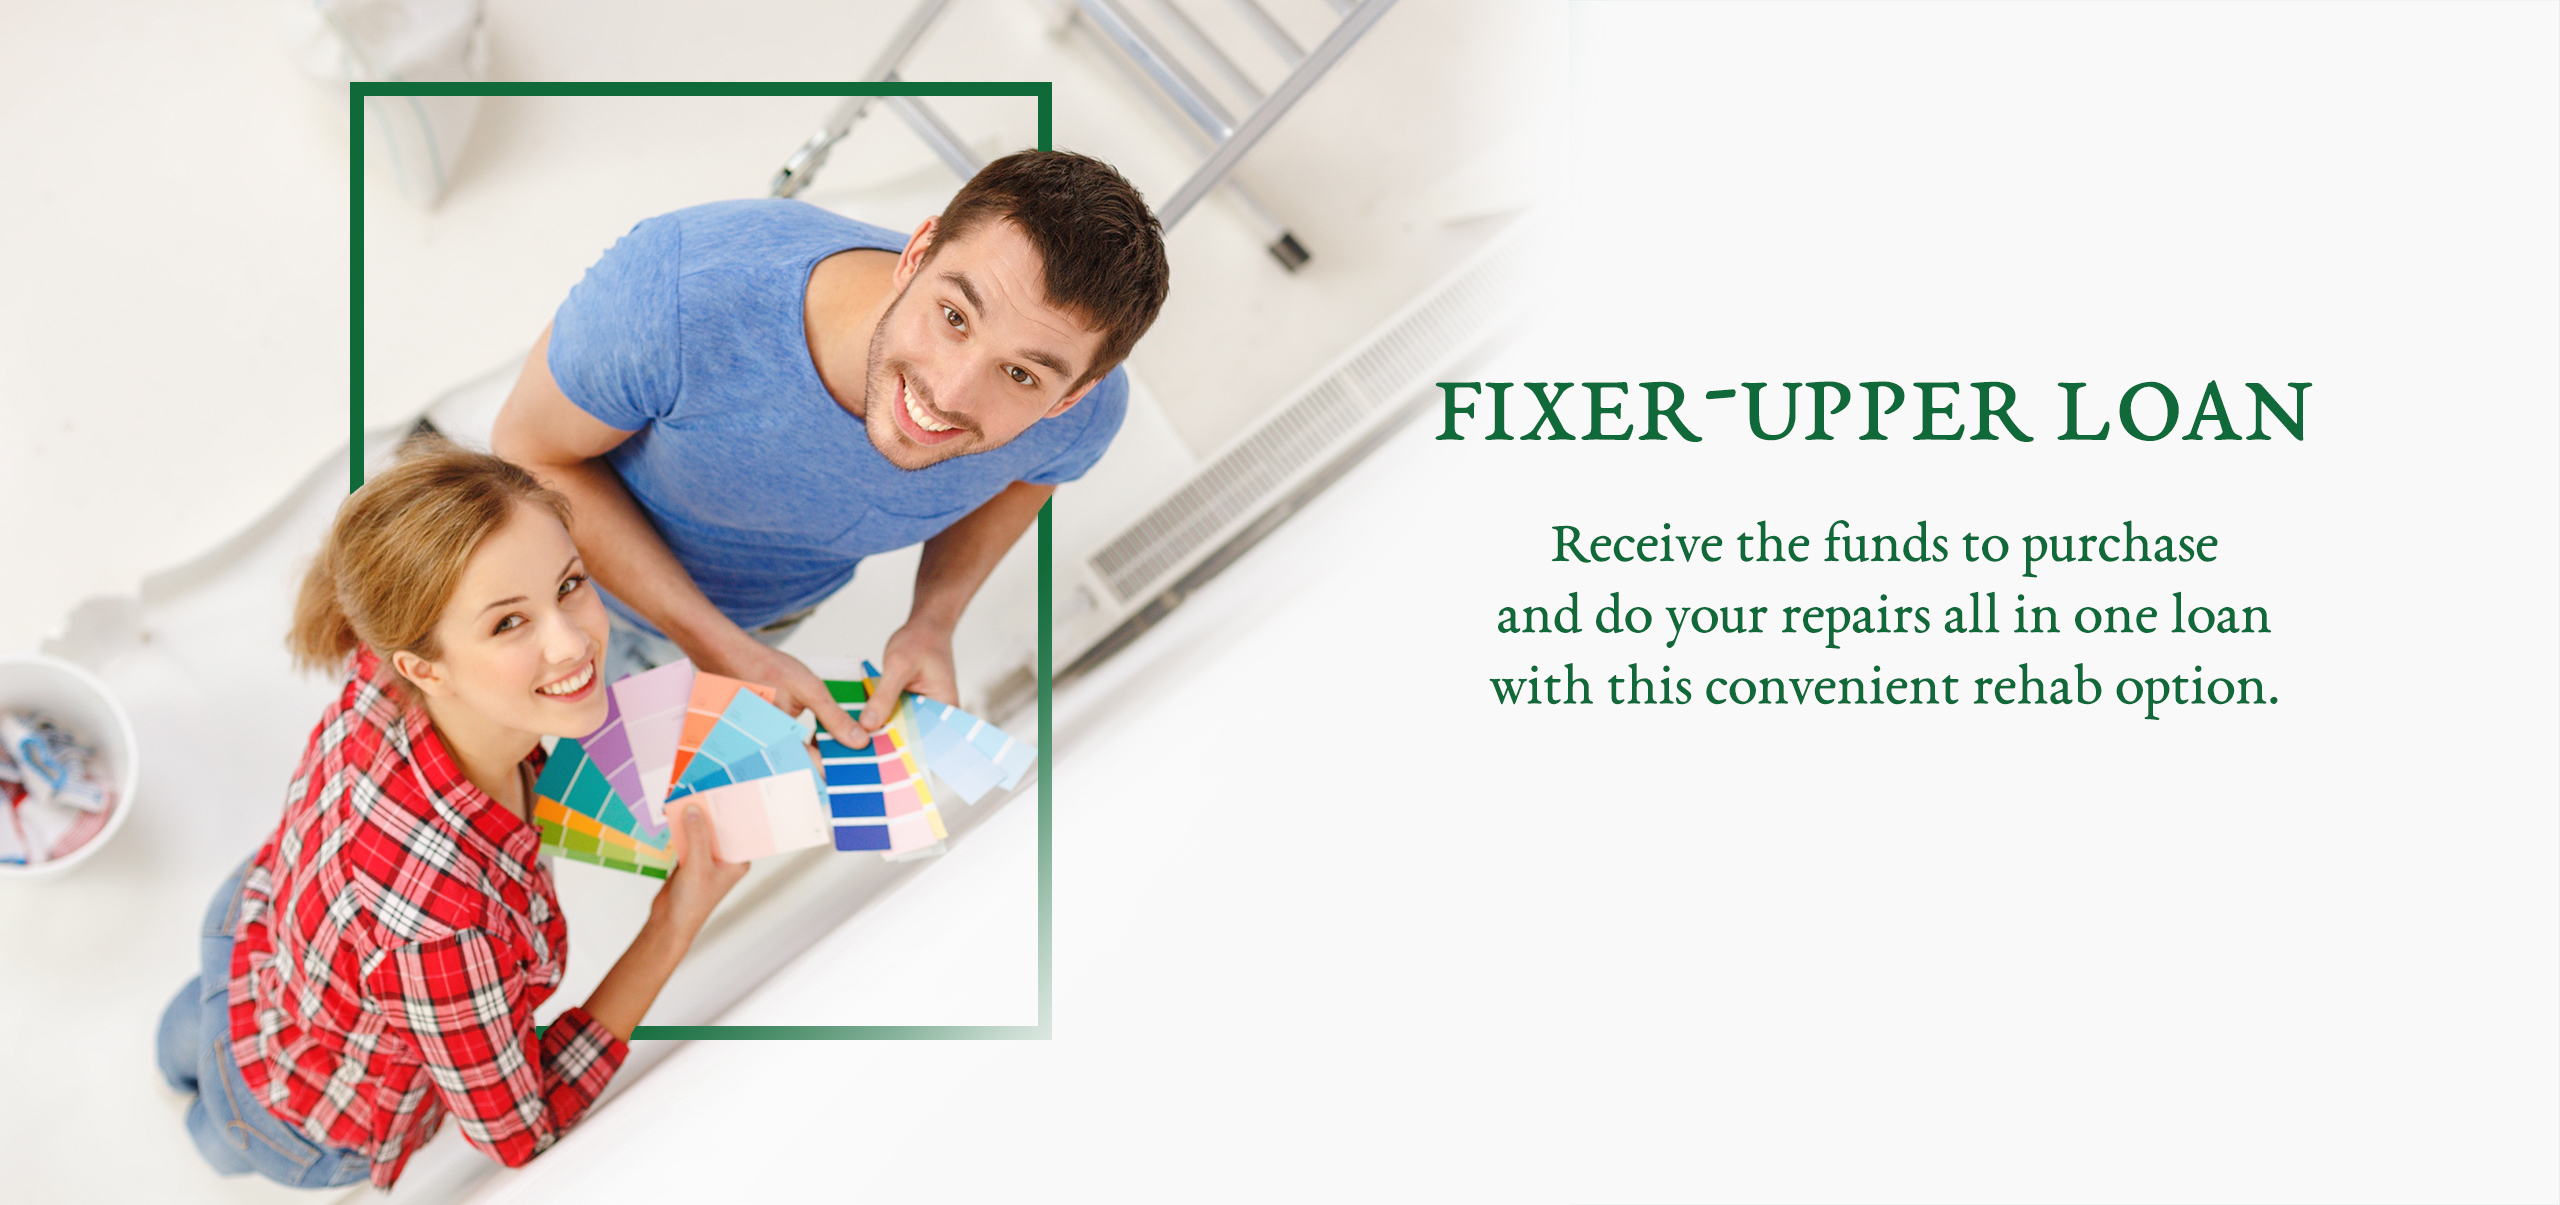 Fixer Upper Loan